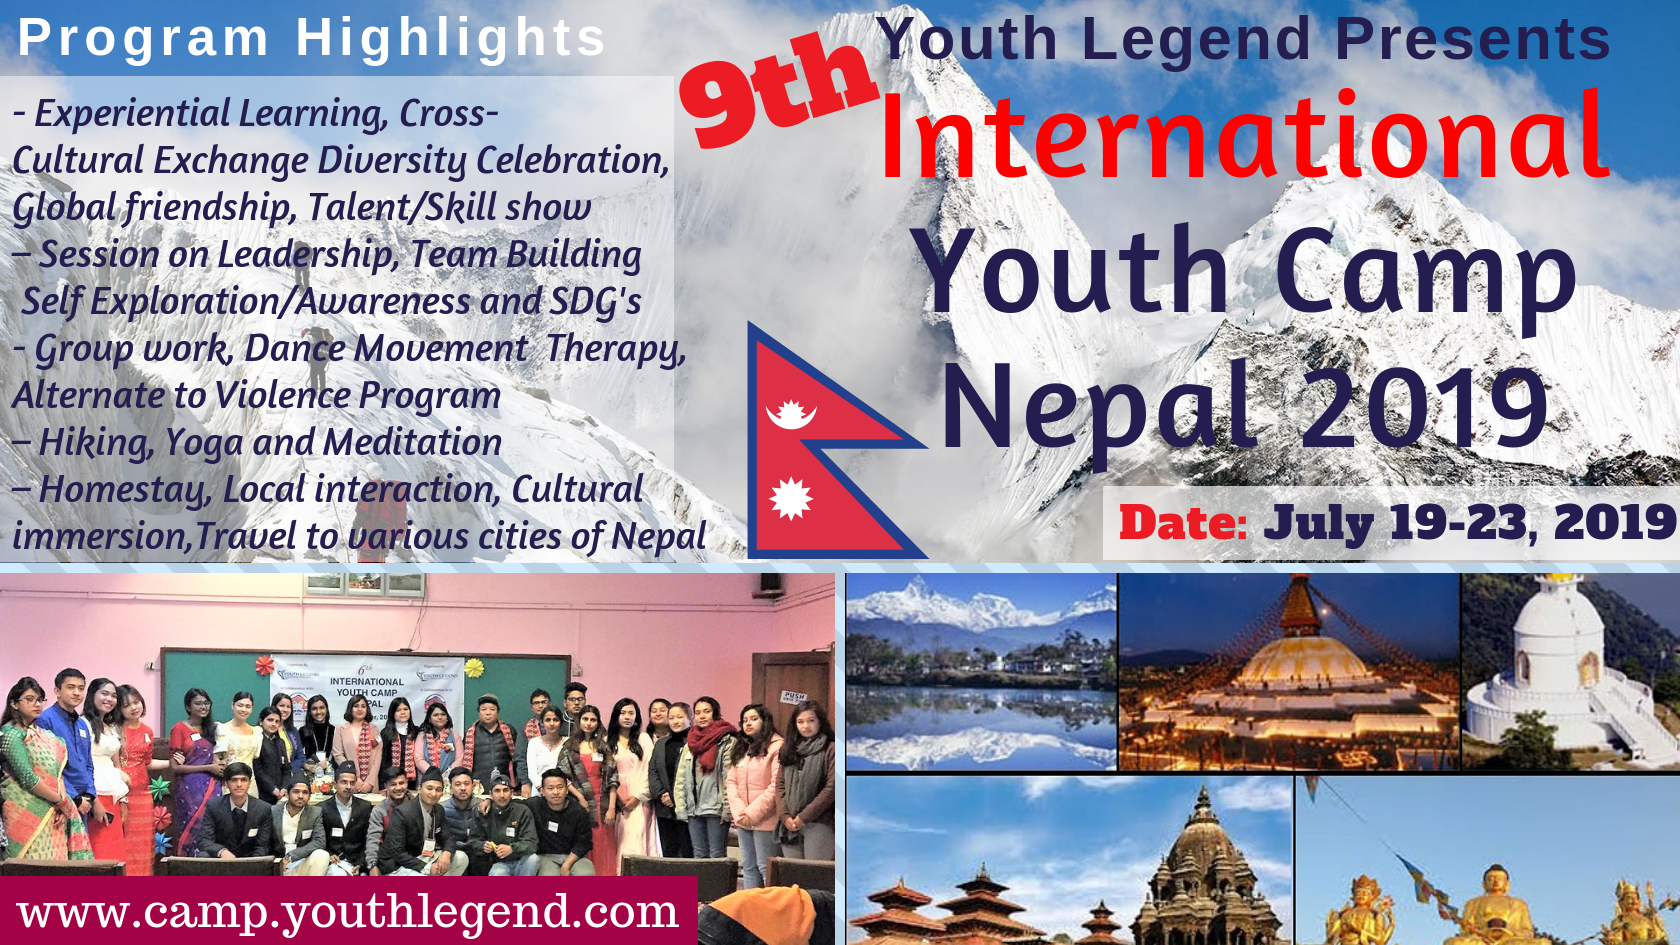 Register to attend the 9th International Youth Camp Nepal (IYCN)